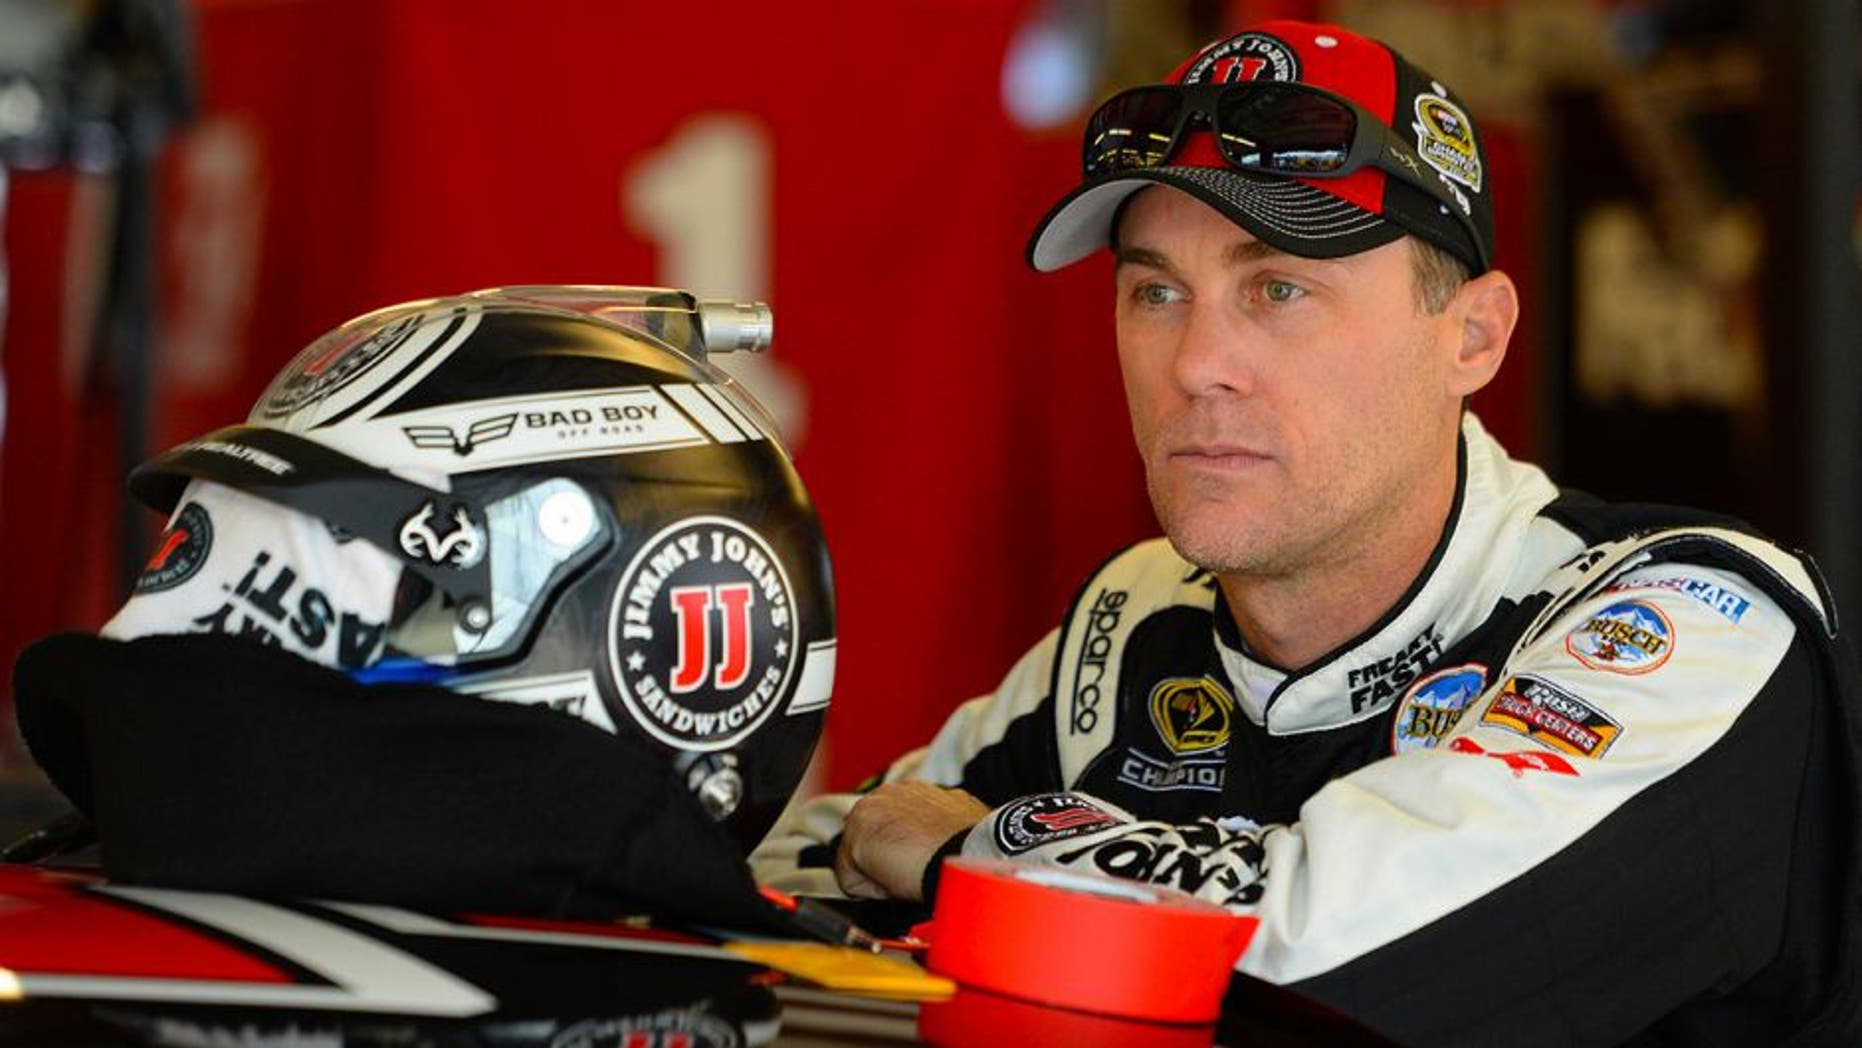 JOLIET, IL - SEPTEMBER 17: Kevin Harvick, driver of the #4 Jimmy John's Chevrolet, stands in the garage area during practice for the NASCAR Sprint Cup Series Teenage Mutant Ninja Turtles 400 at Chicagoland Speedway on September 17, 2016 in Joliet, Illinois. (Photo by Robert Laberge/Getty Images)